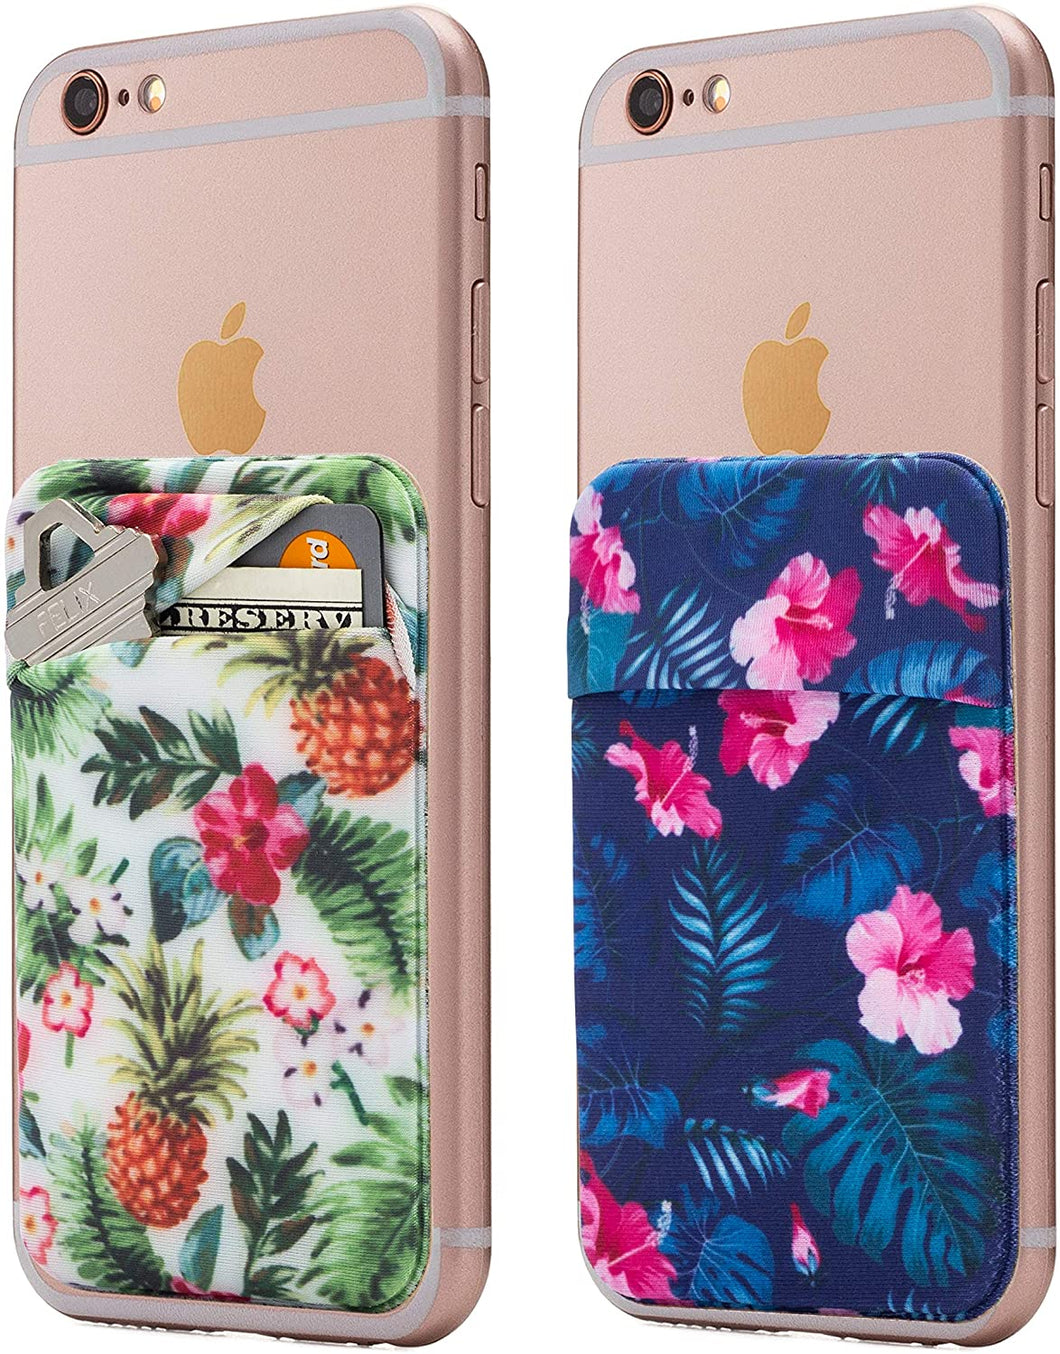 (Two) Stretchy Full Cover Tropical Cell Phone Stick On Wallet Card Holder Phone Pocket for iPhone, Android and All Smartphones.